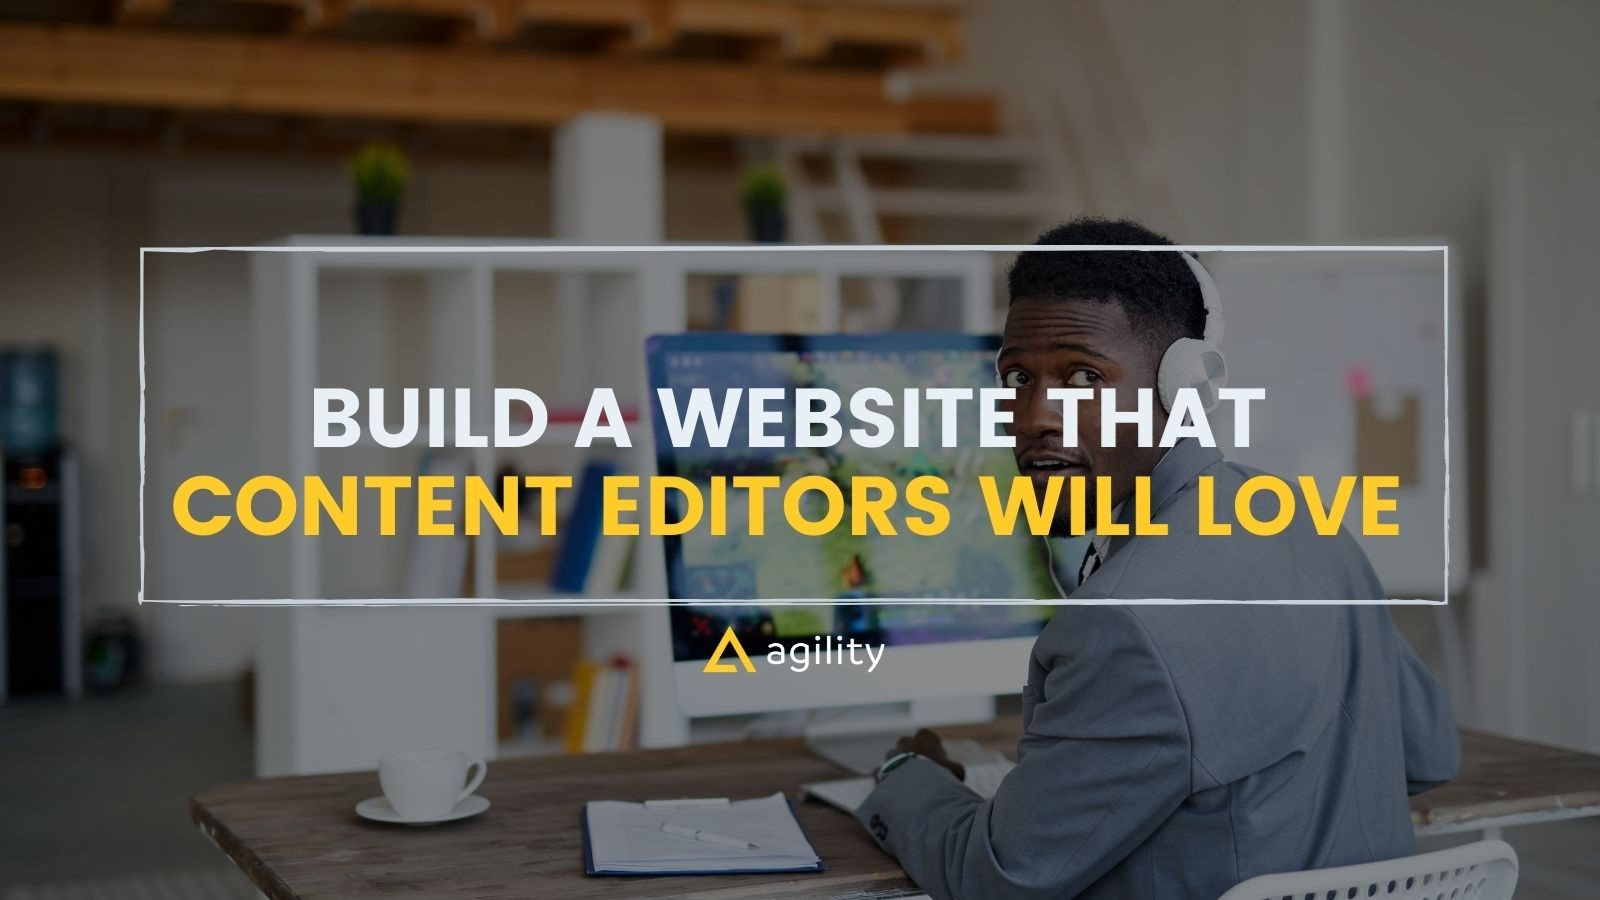 Building a site for content editors on agilitycms.com